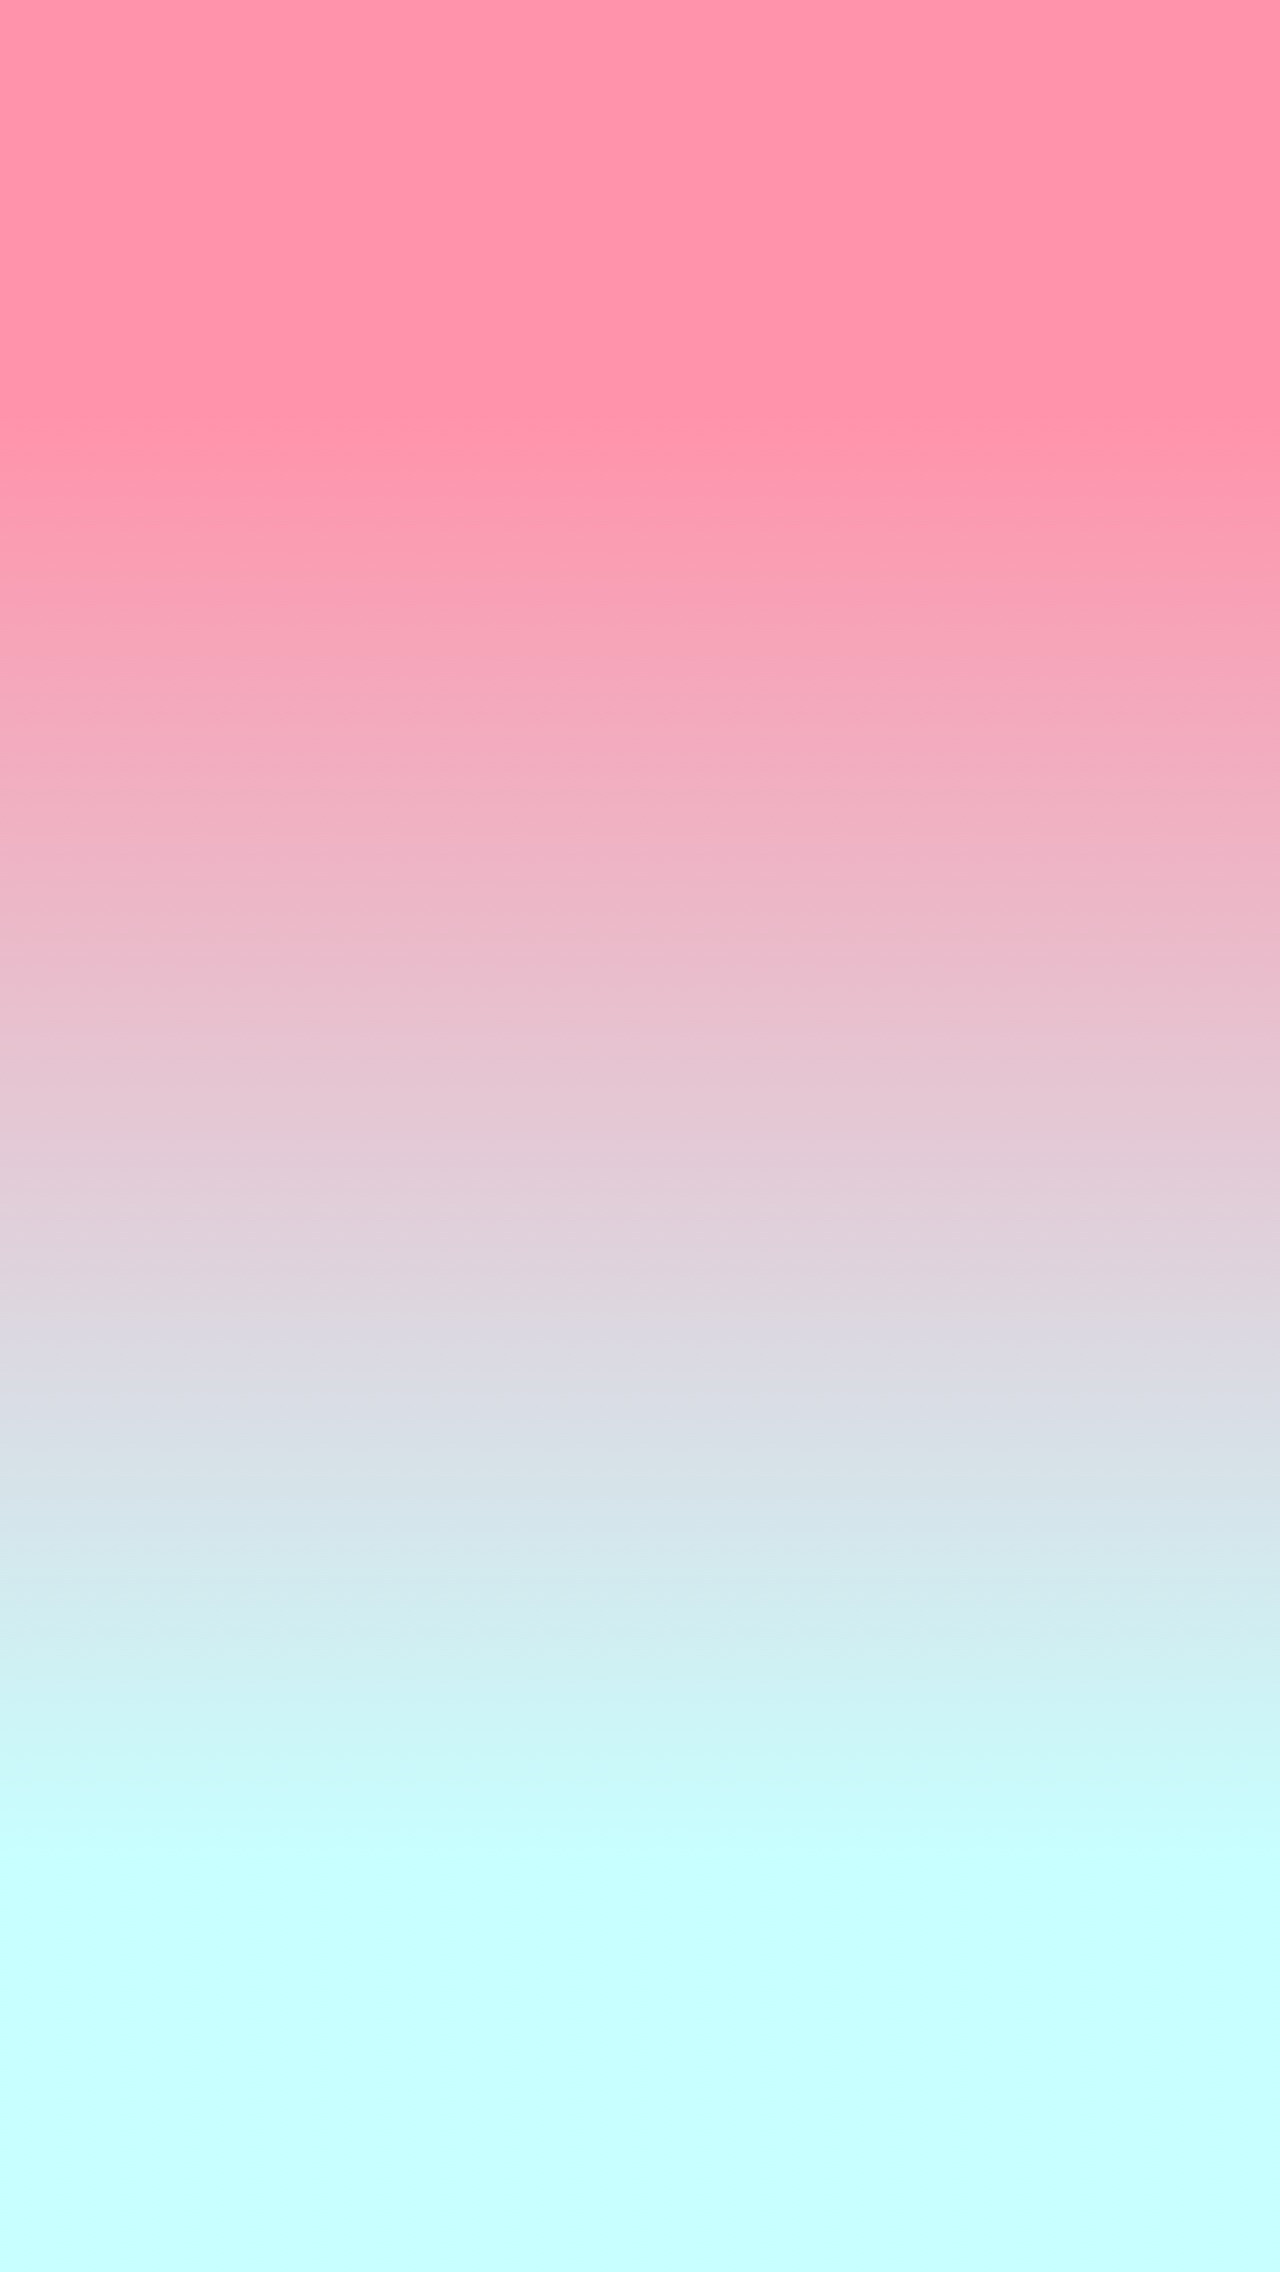 Pink and blue ombre iphone wallpaper